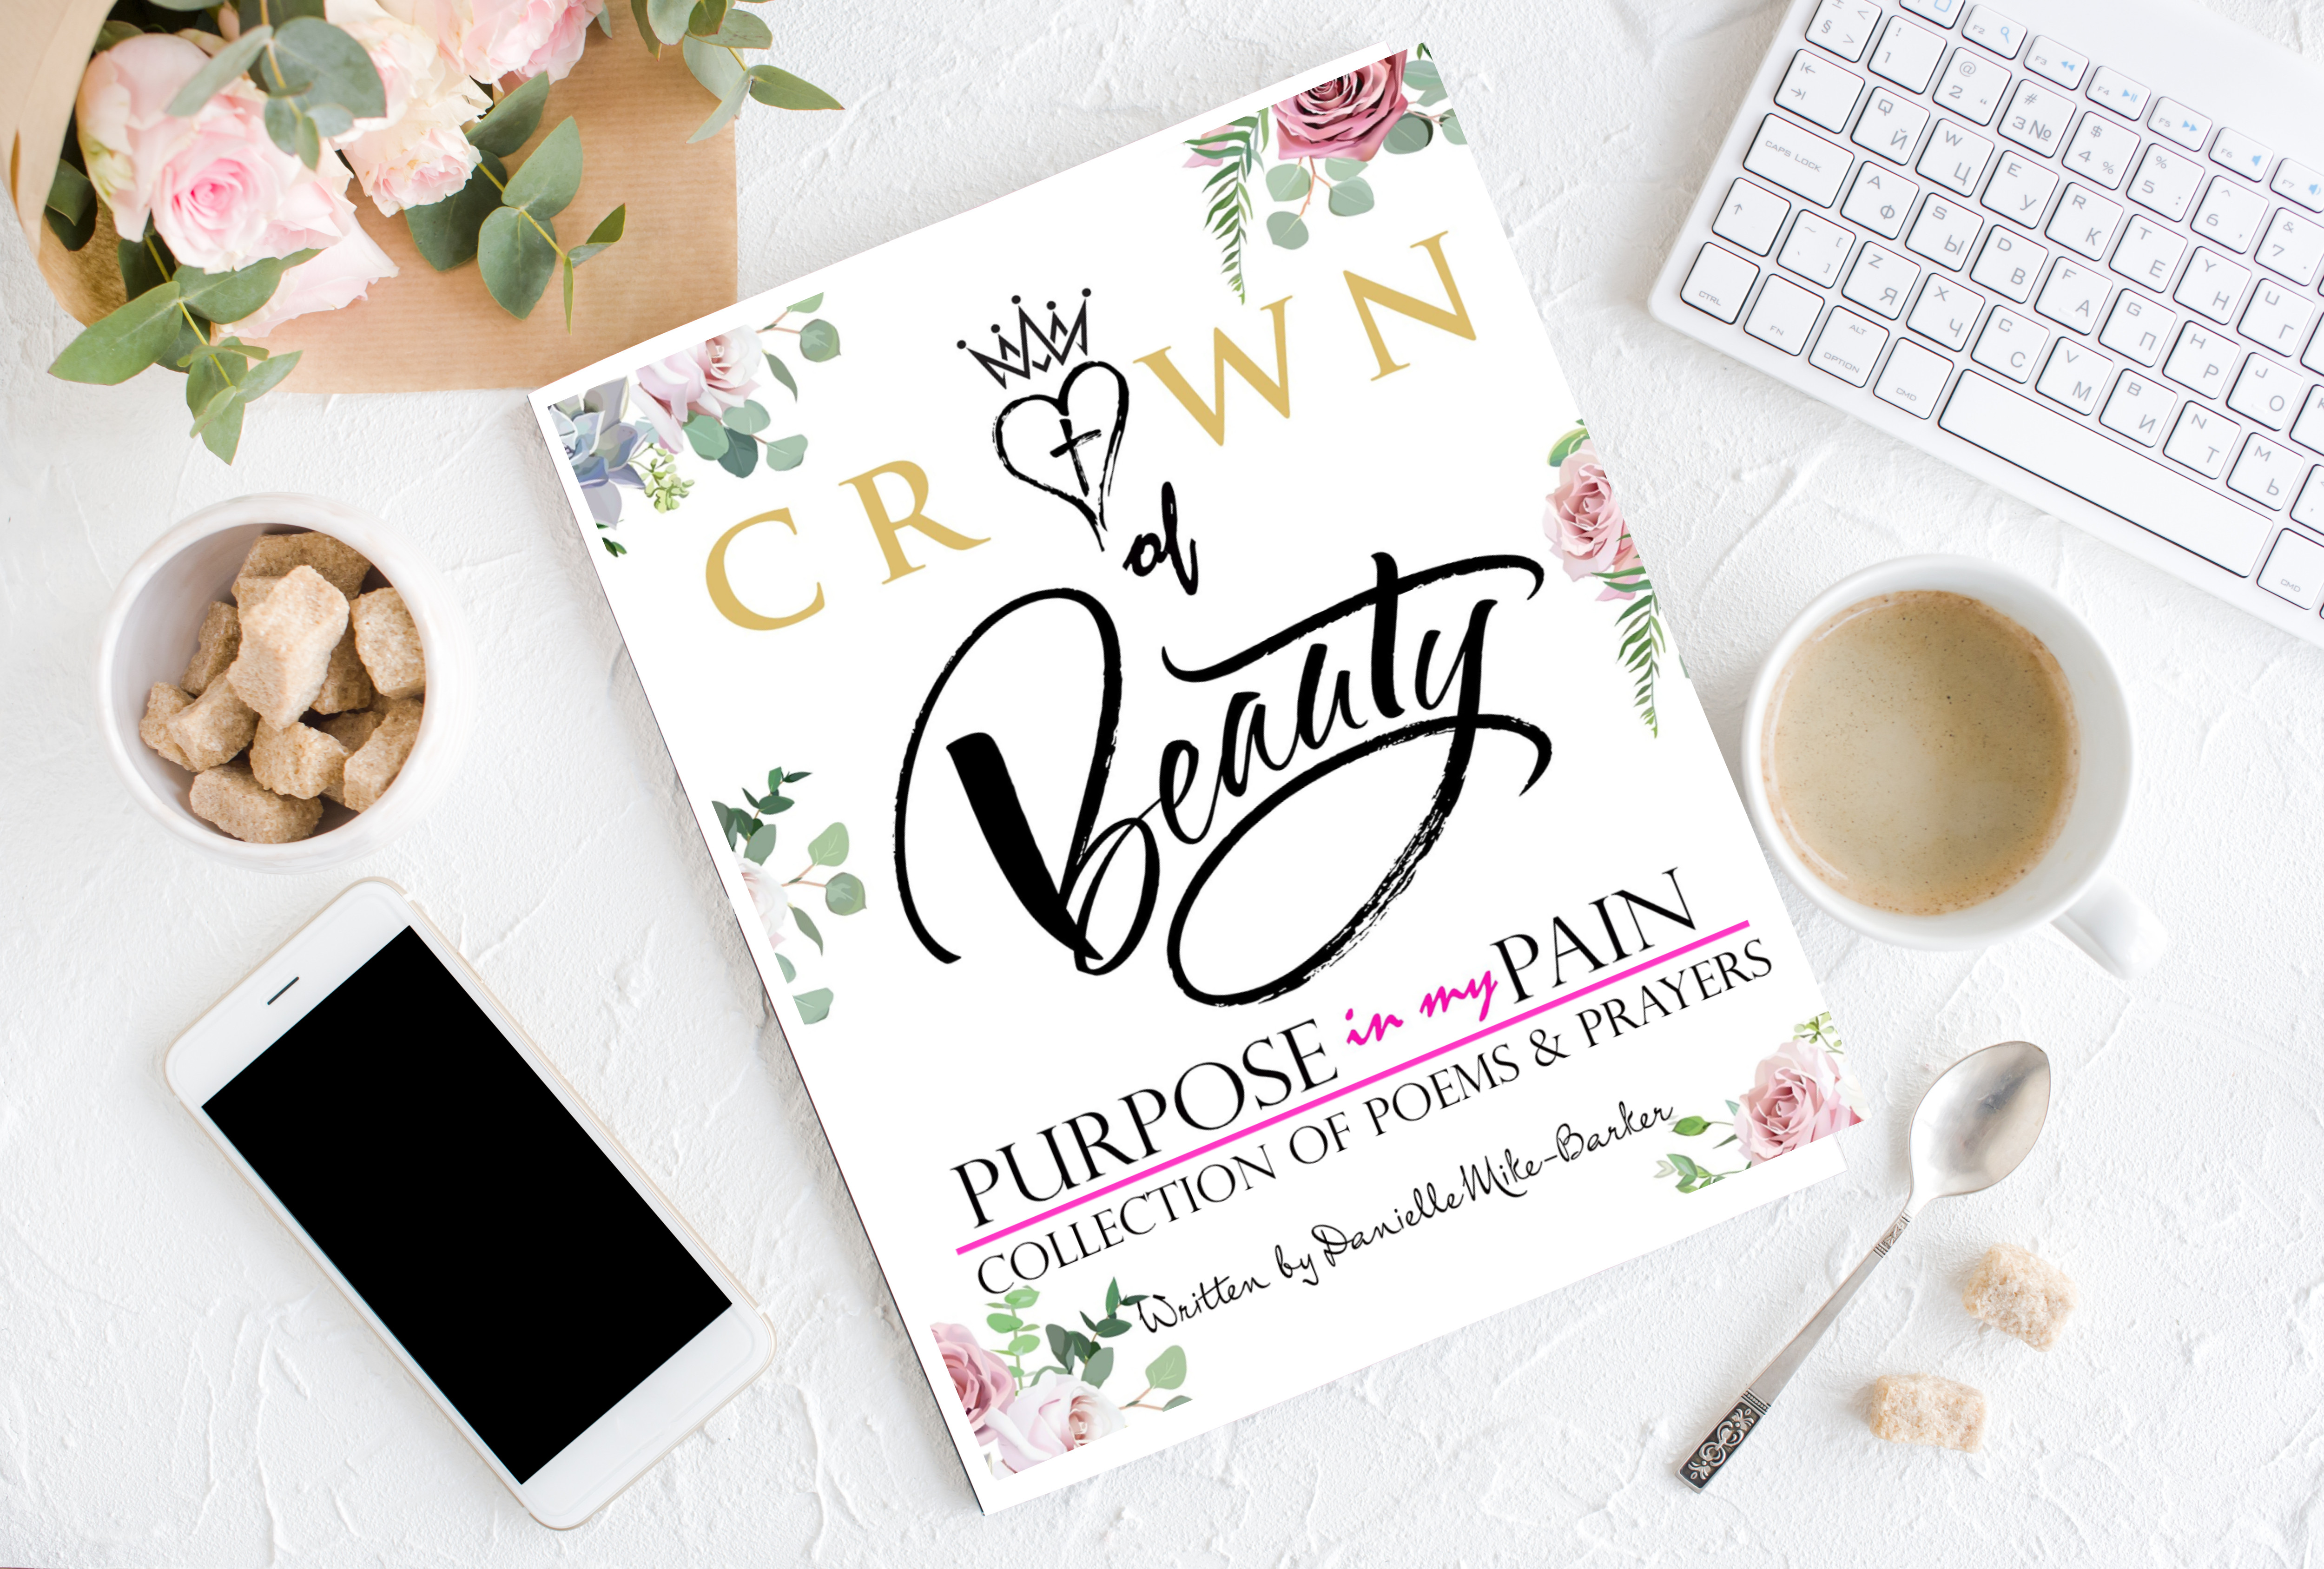 Crown of Beauty Poetry Virtual Session